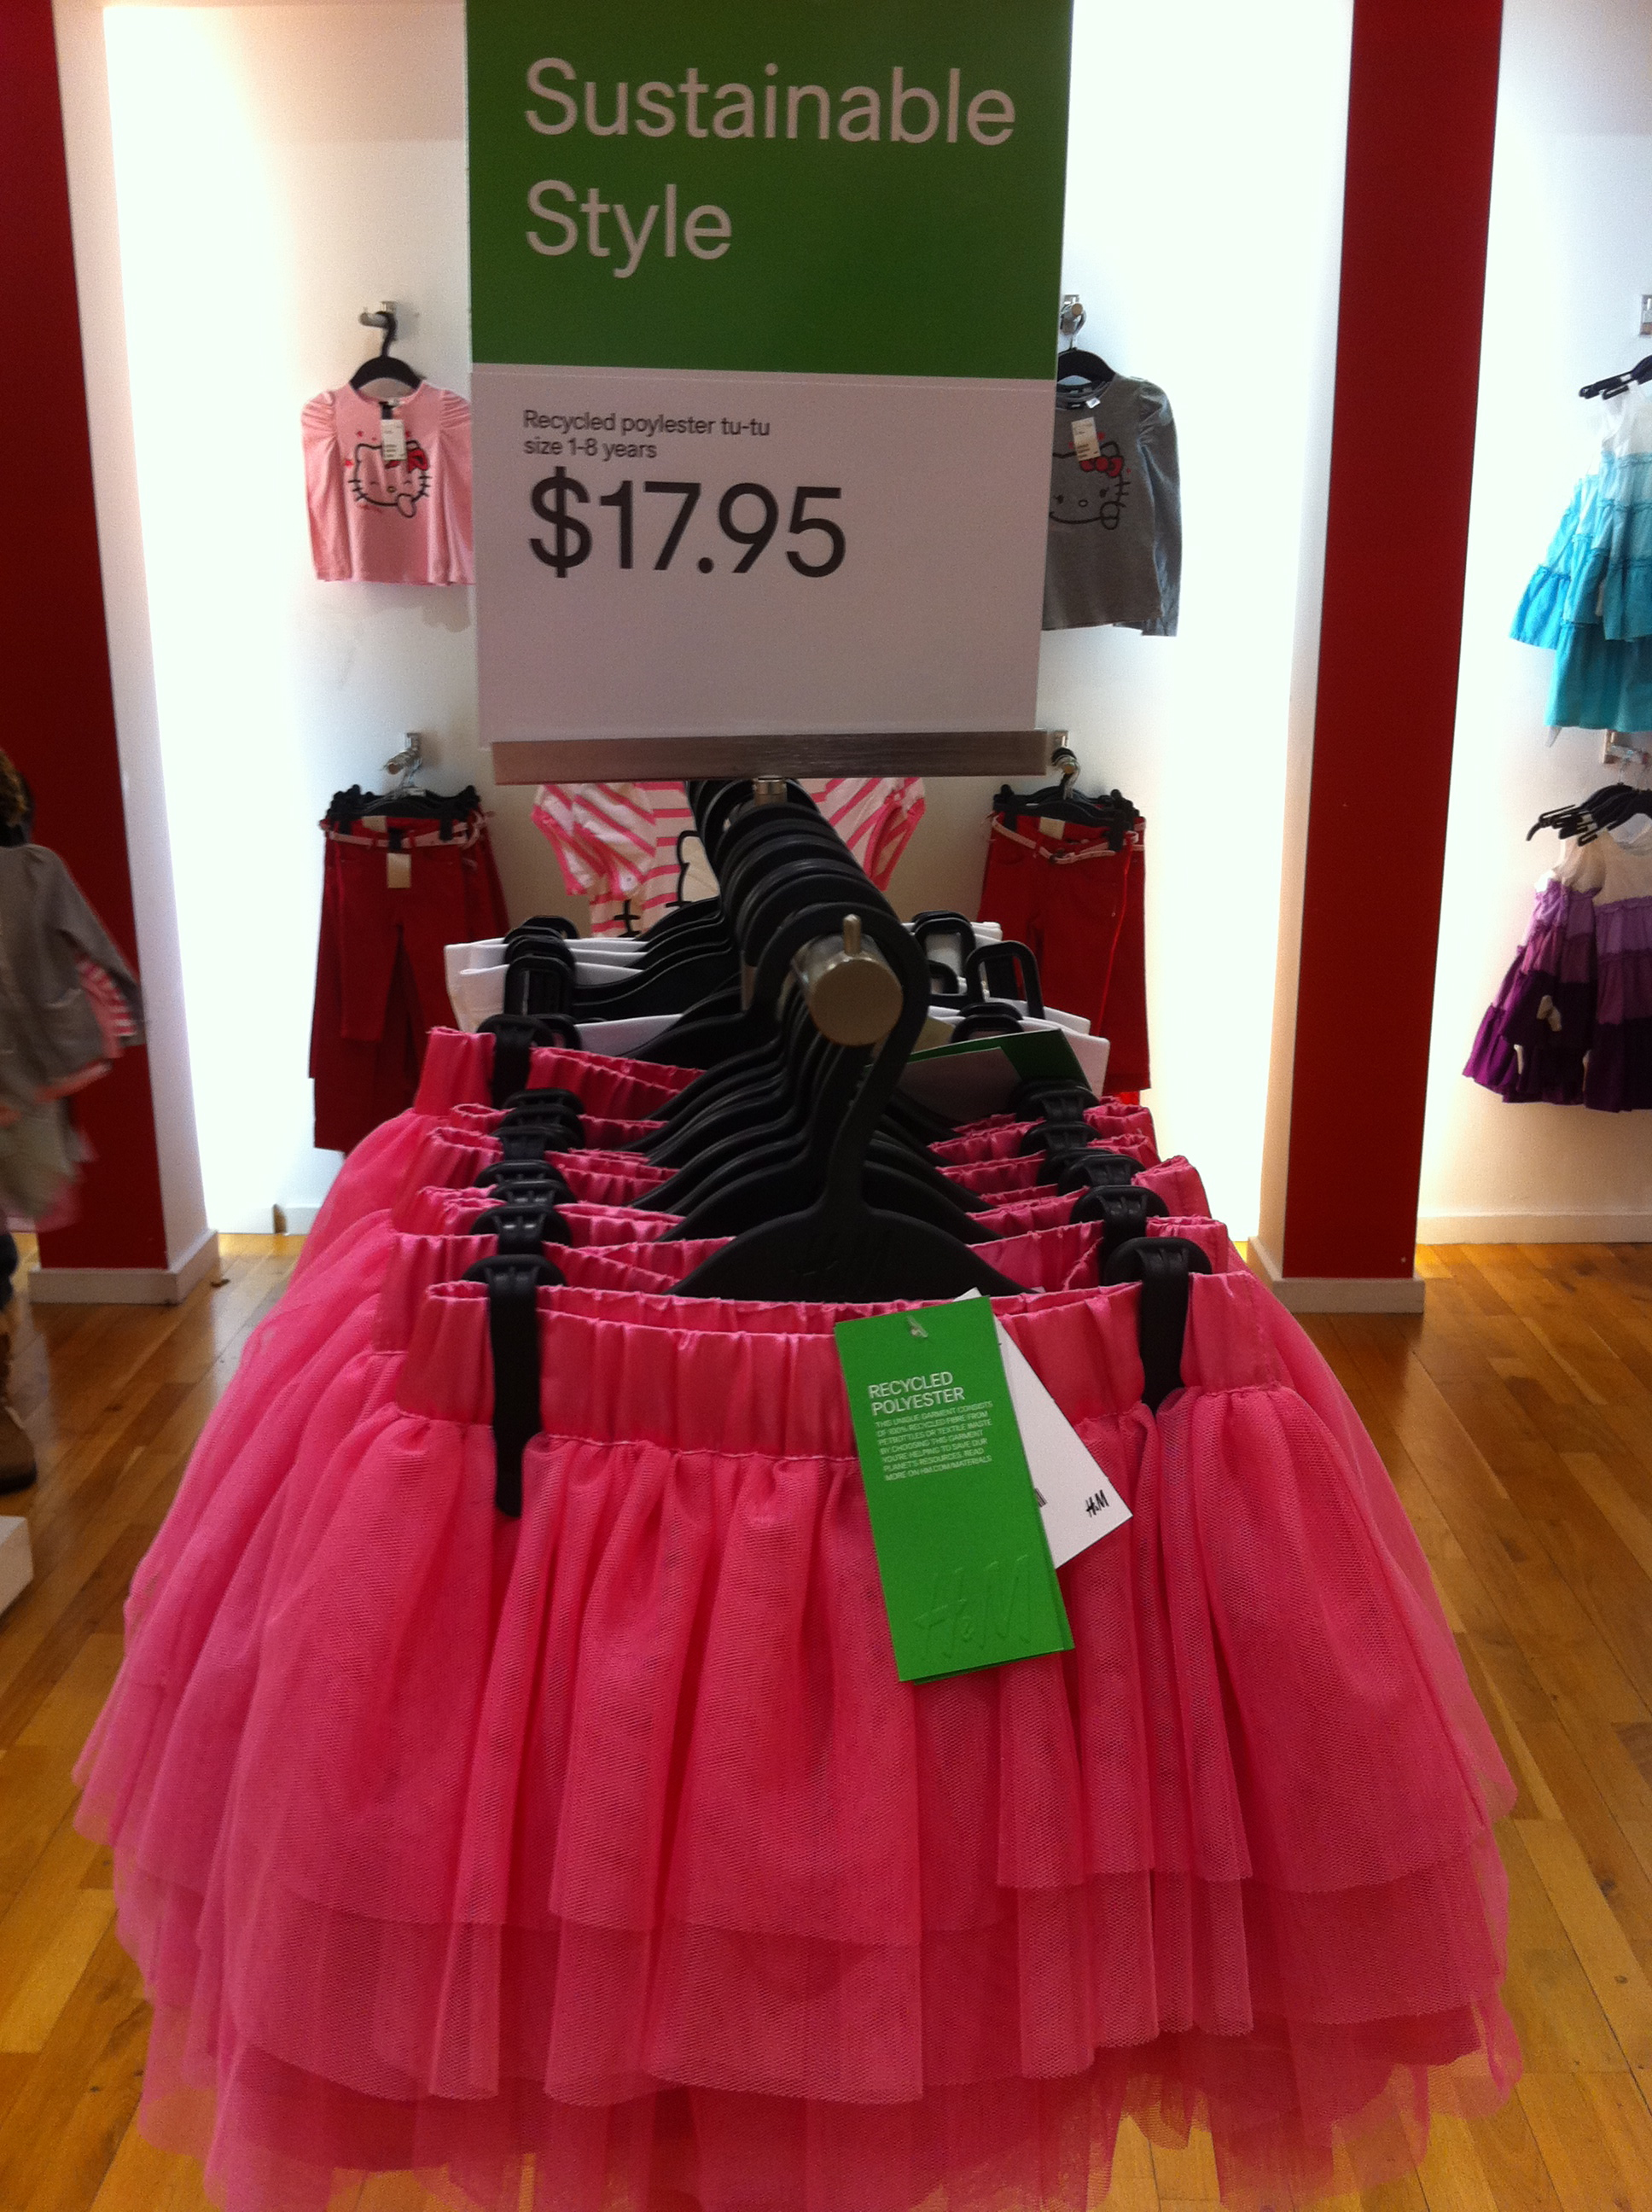 A girly tutu manufactured from recycled materials.